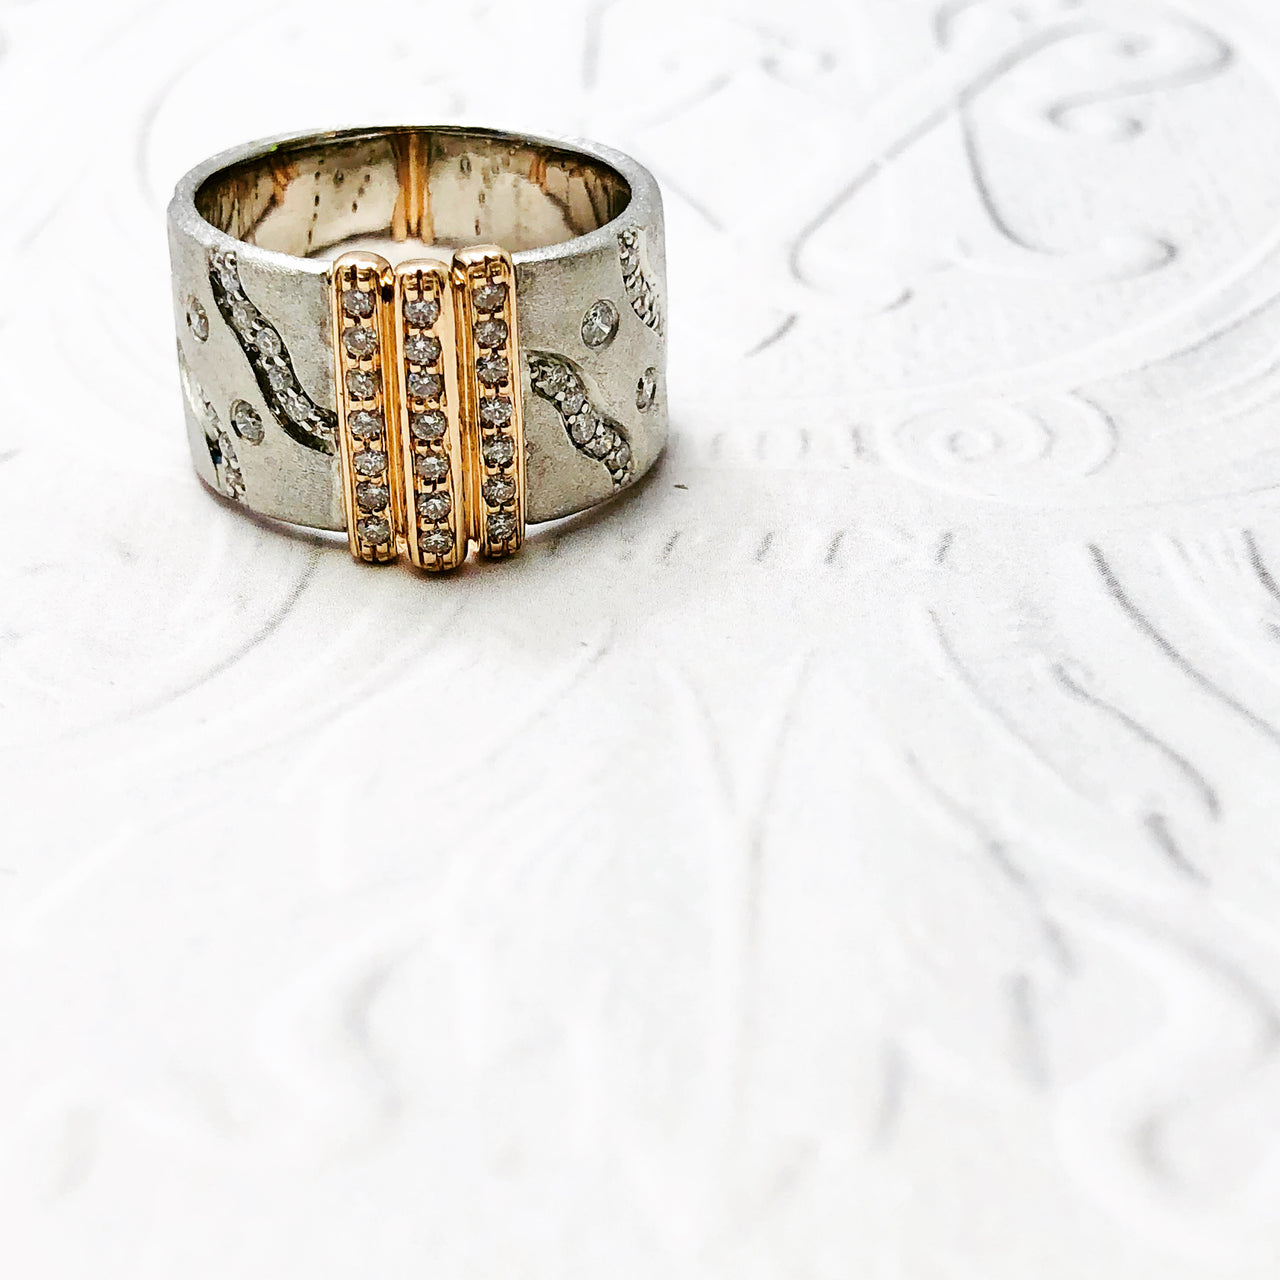 Argentum Silver and 14k Rose Gold Diamond Ring.